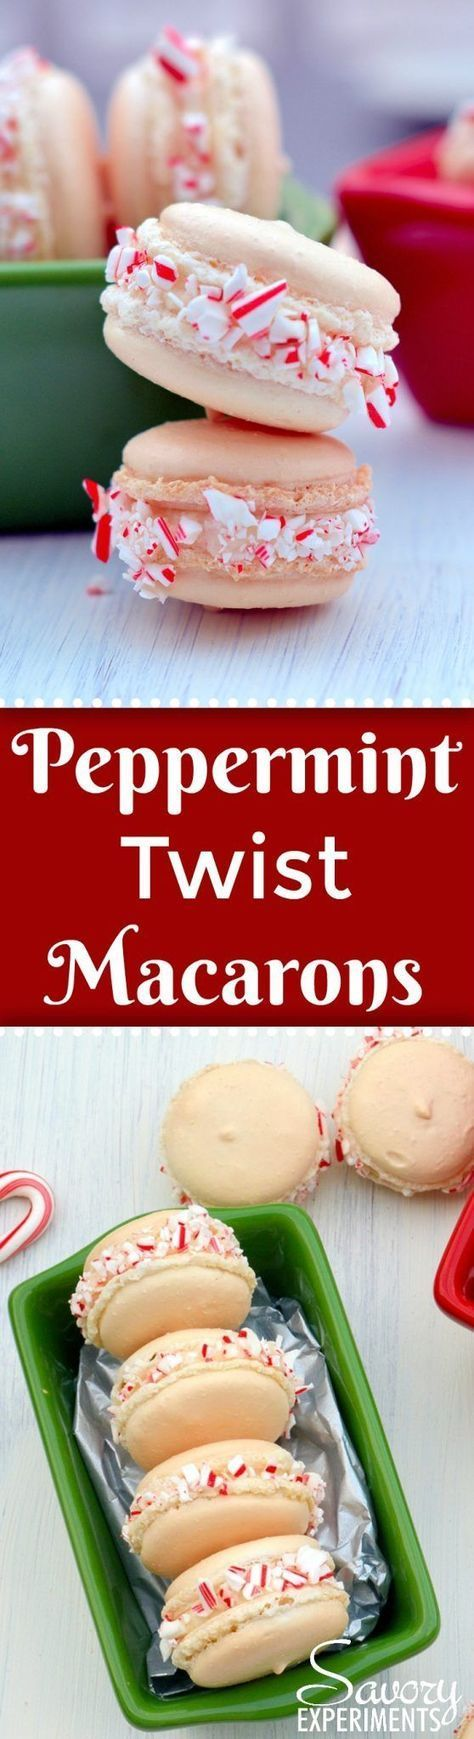 Peppermint Twist Macarons are an easy macaron recipe with a buttercream filling. Perfect recette macarons for Christmas cookies and holiday parties. #easymacaronrecipe #christmascookies www.savoryexperiments.com via @savorycooking